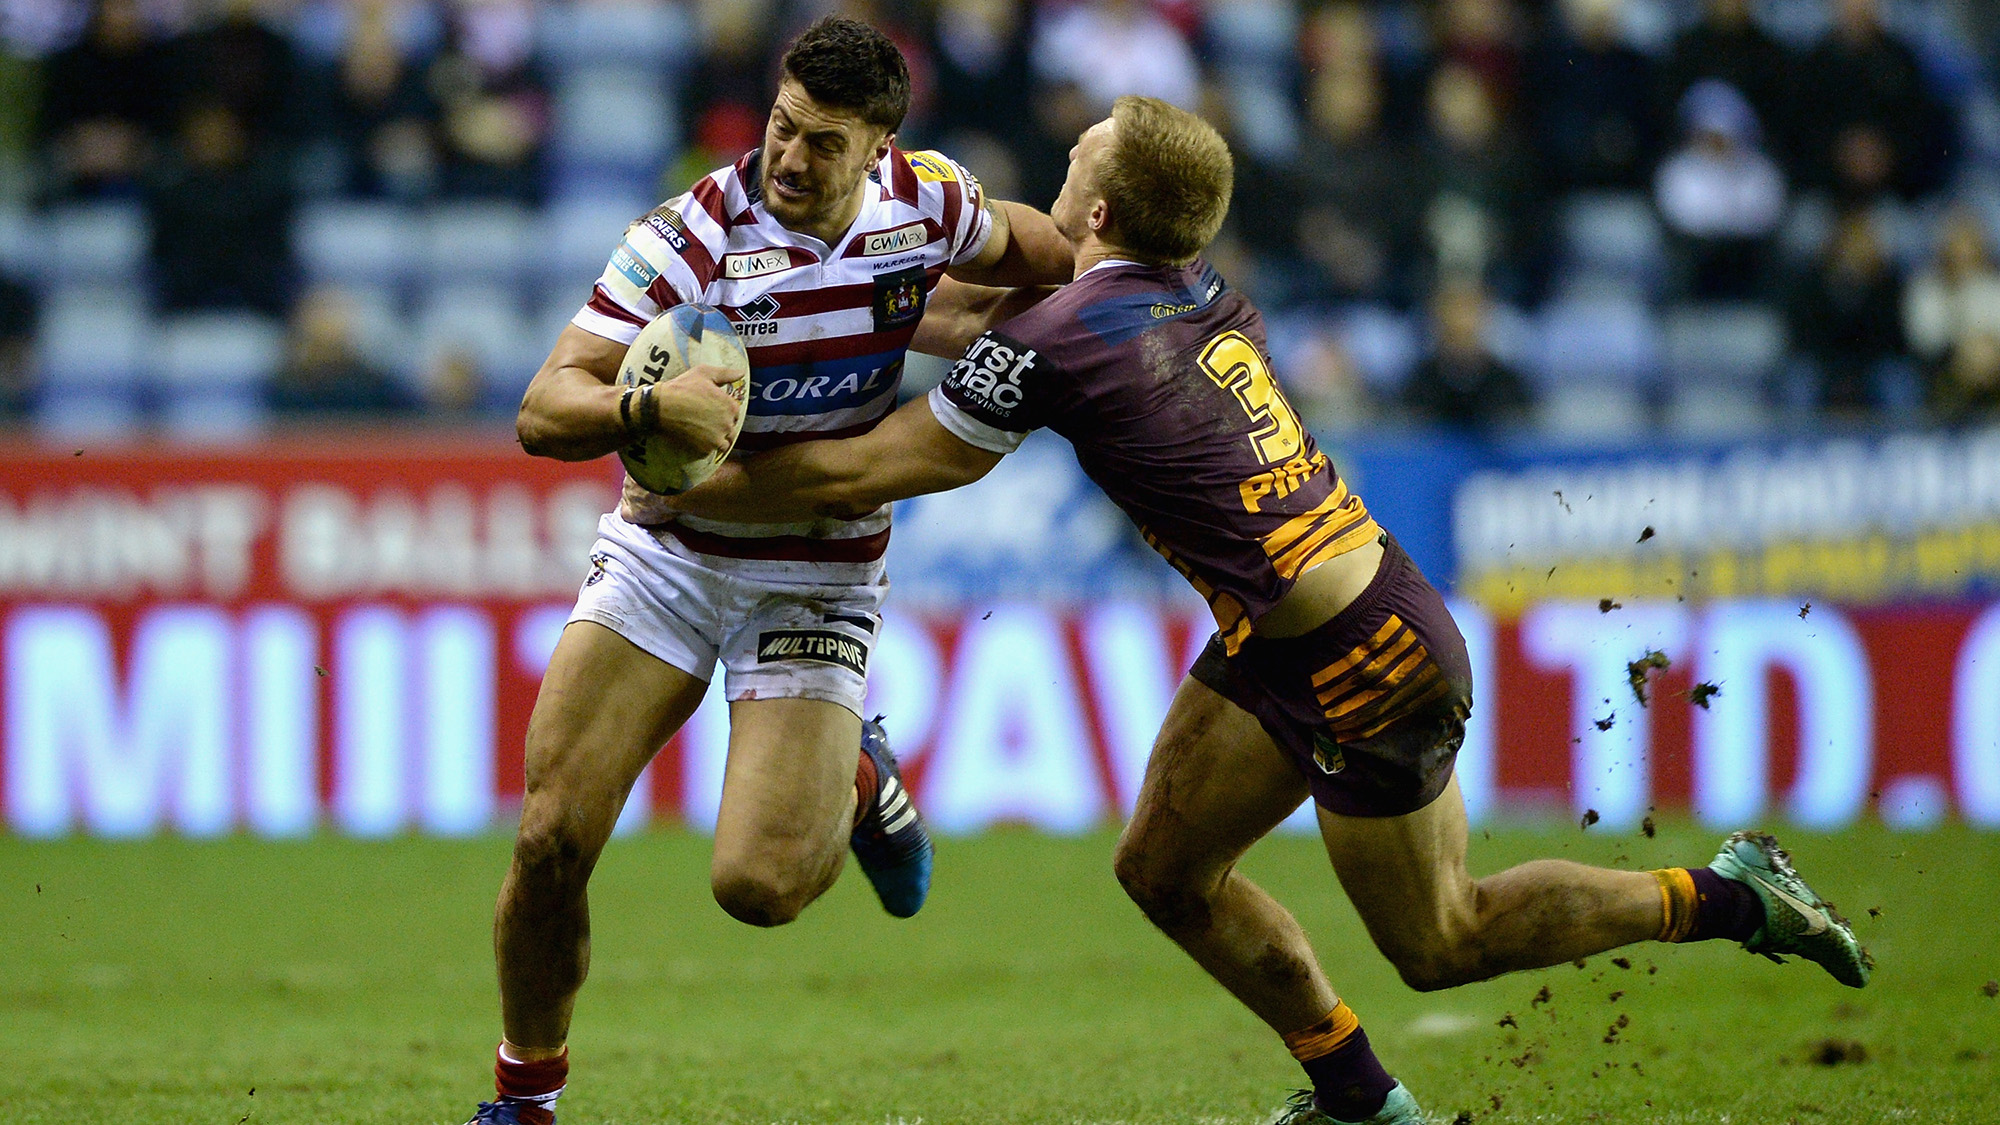 Warriors sign former Wigan Warriors centre Anthony Gelling